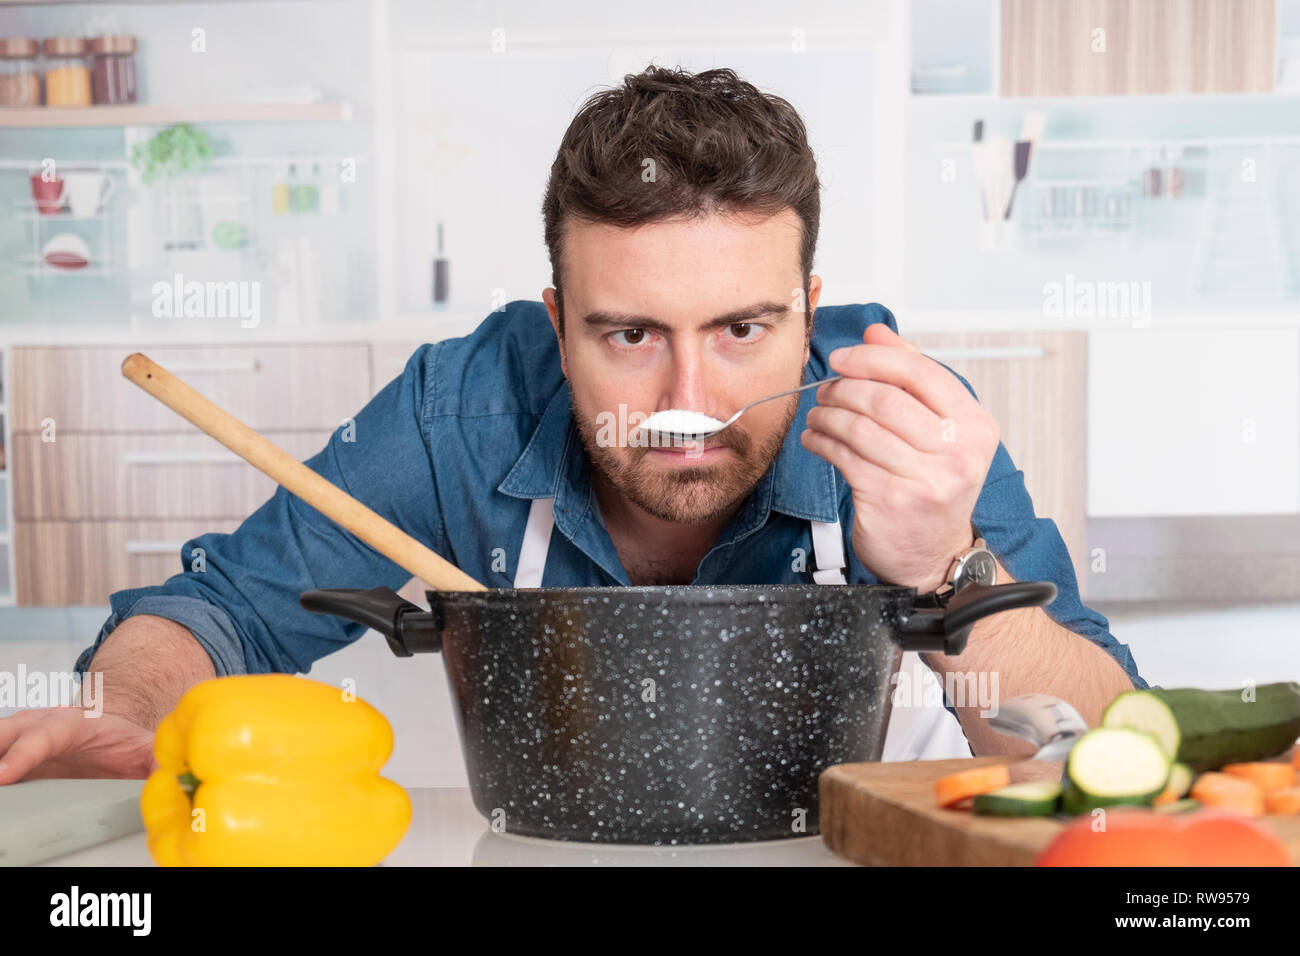 One man is cooking in his kitchen and adding ingredient Stock Photo